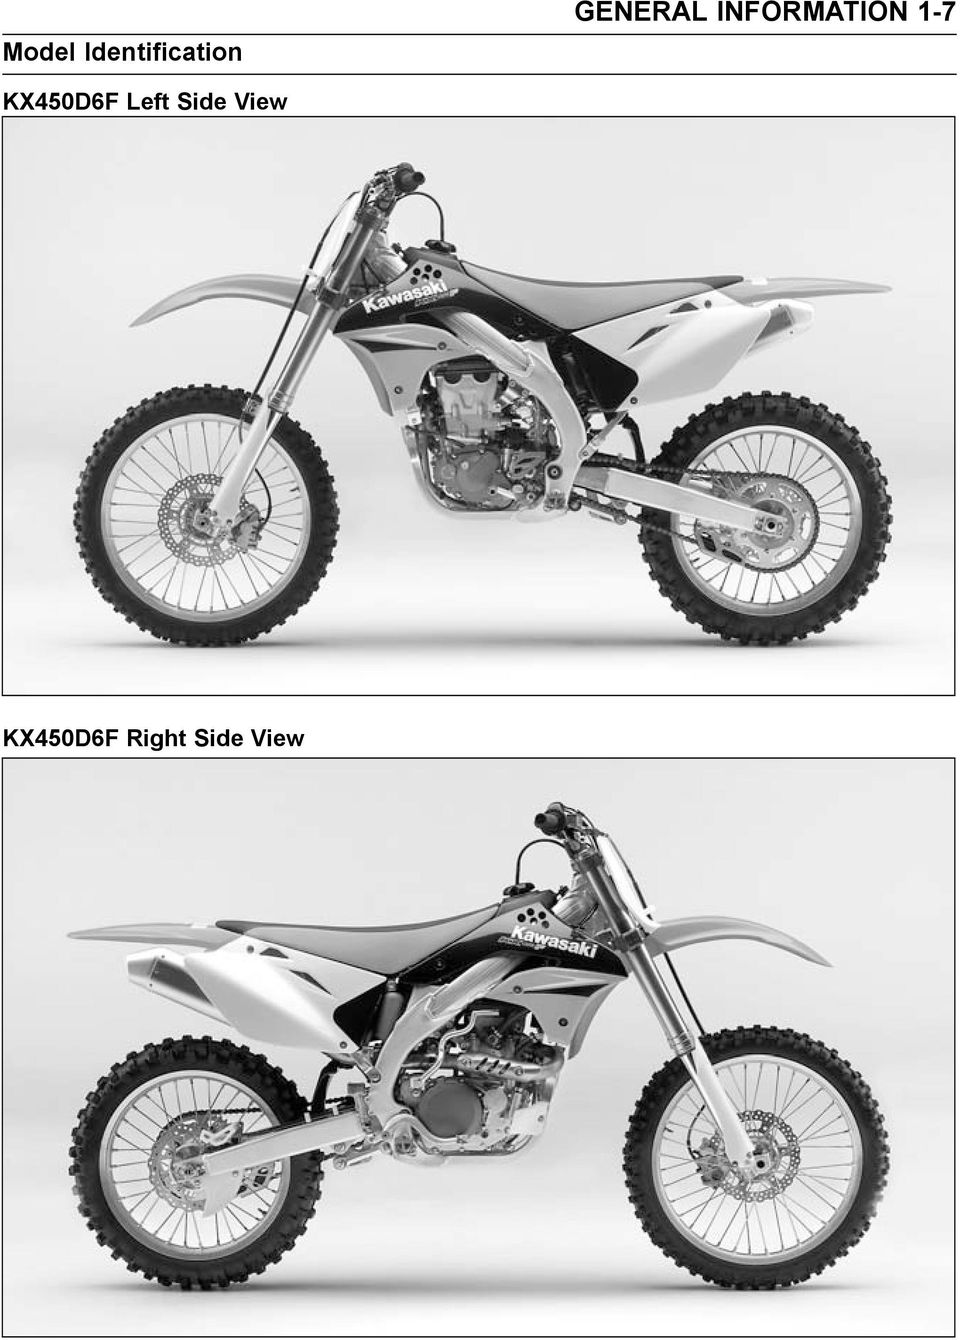 KX450D6F Left Side View